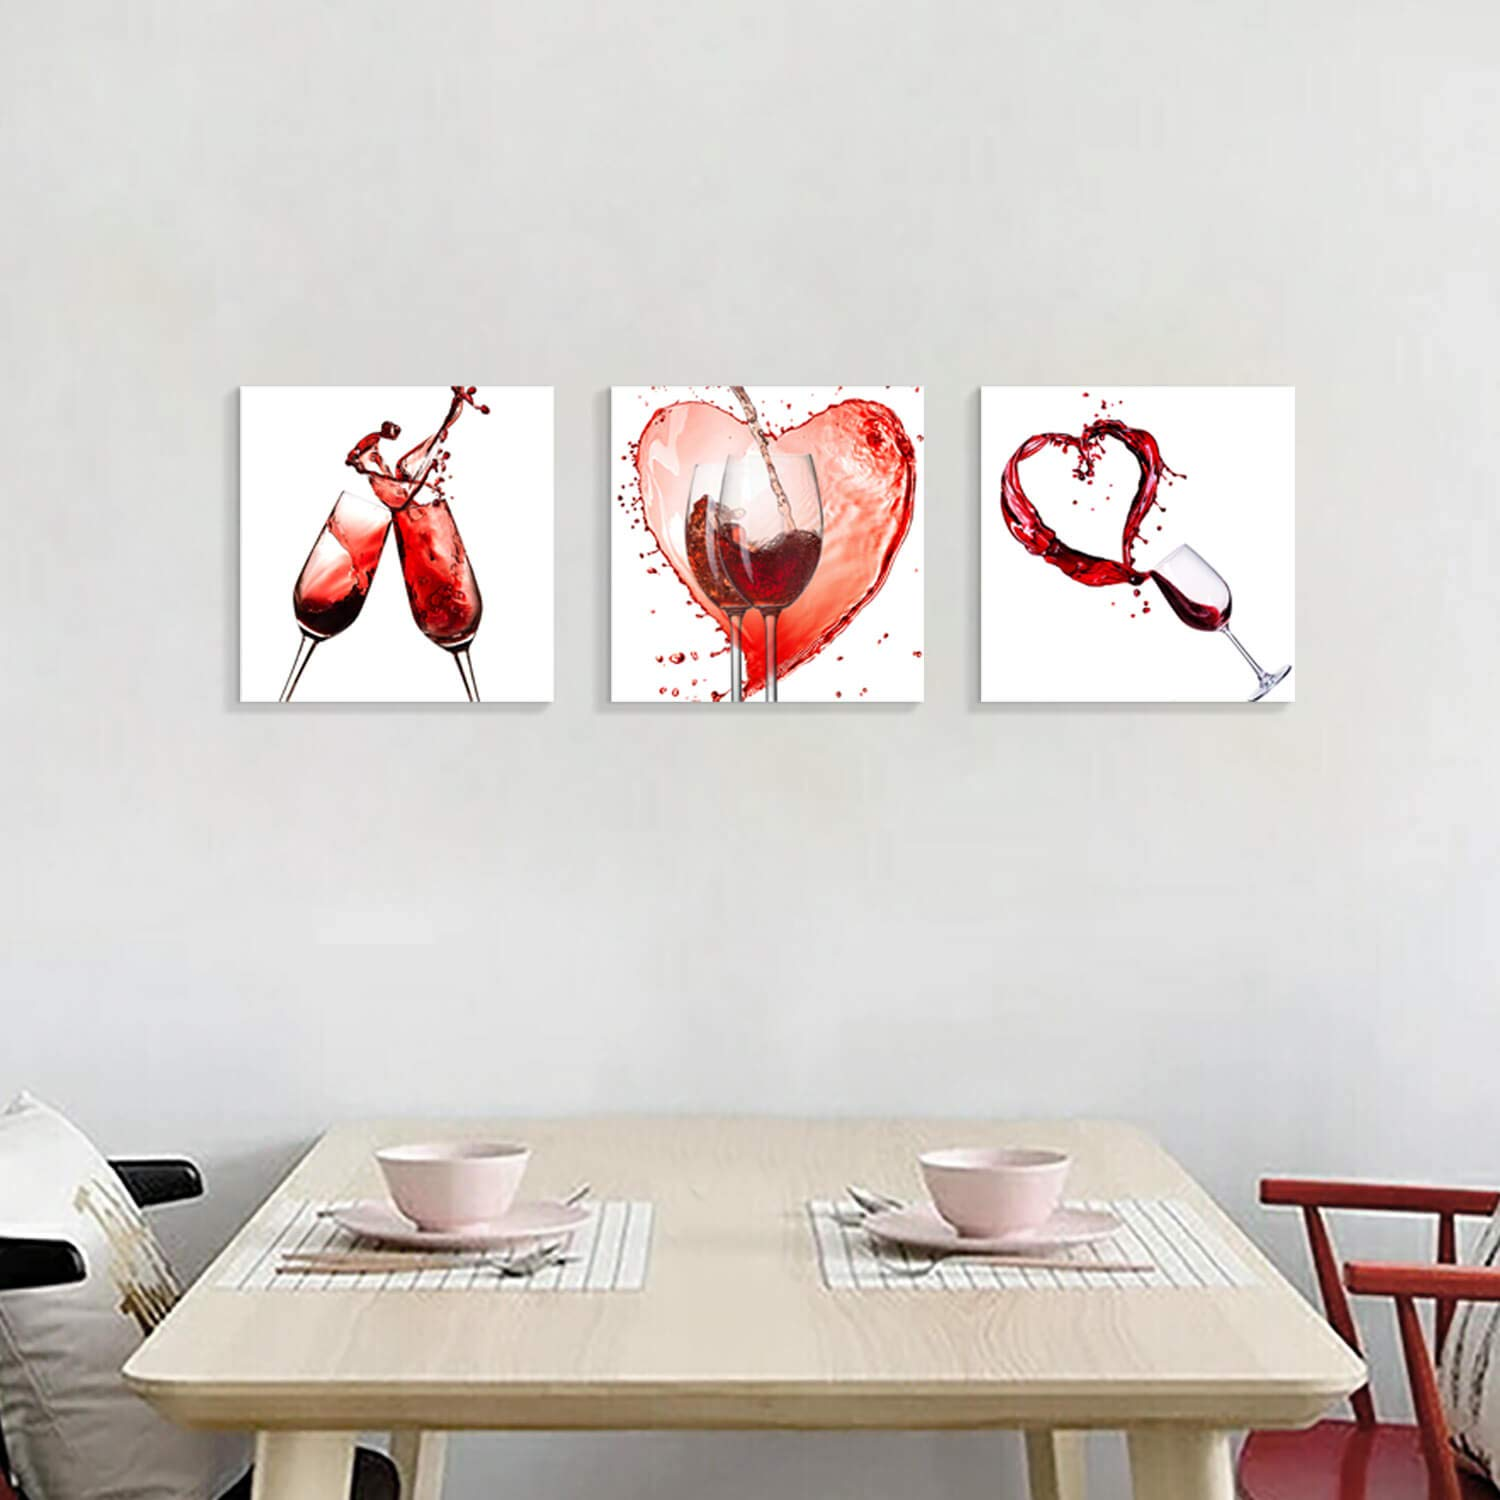 Wine Pictures Canvas Wall Art Vino Rouge Pouring and Goblets Graphic Artwork Pictures for Kitchen  Dining Room 16 x 16 x 3 Panels